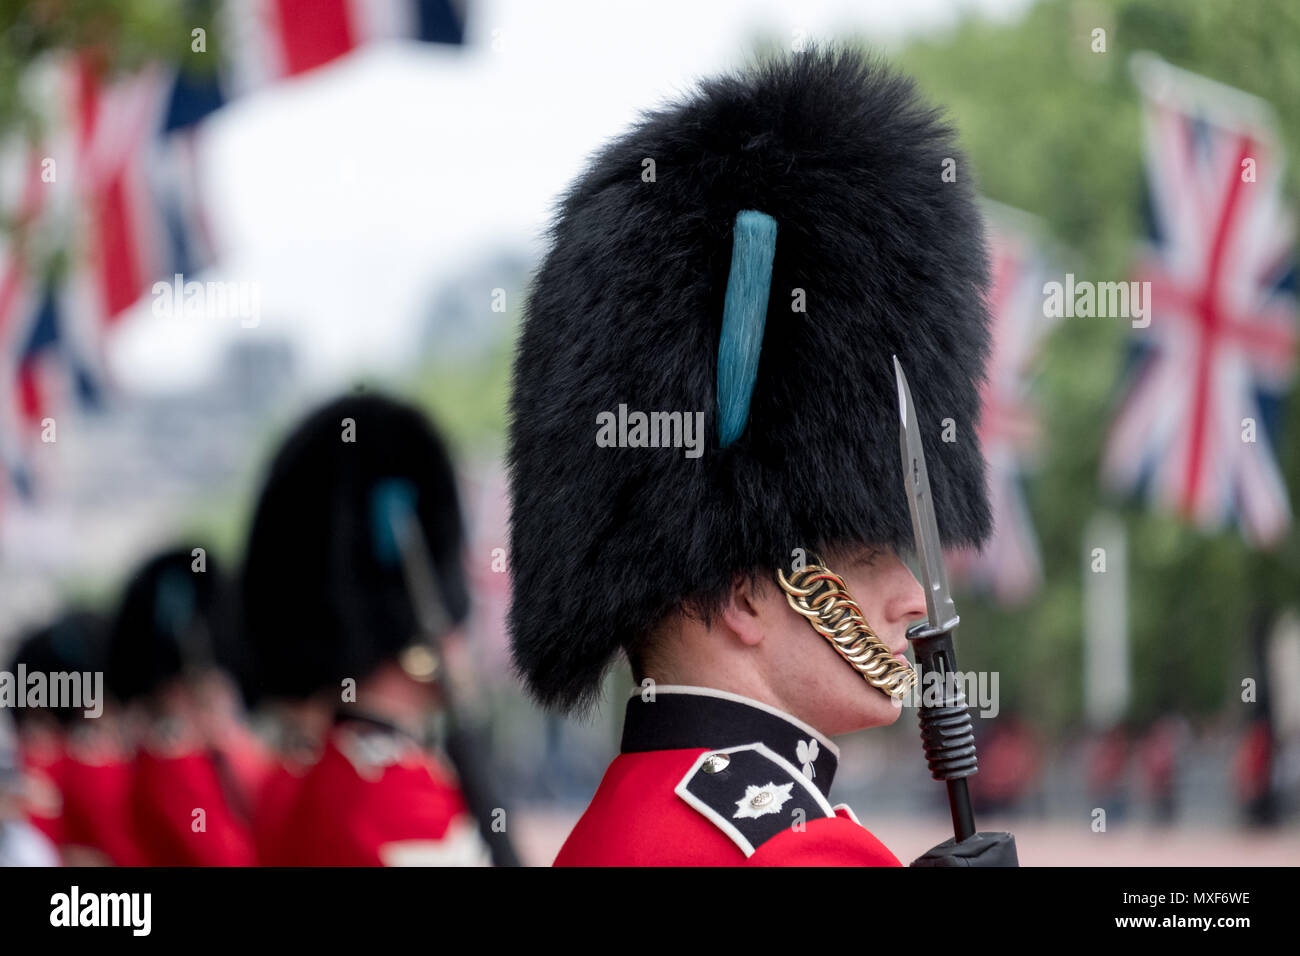 ff883cd5526 Royal Guard soldier in red and black uniform and bearskin hat